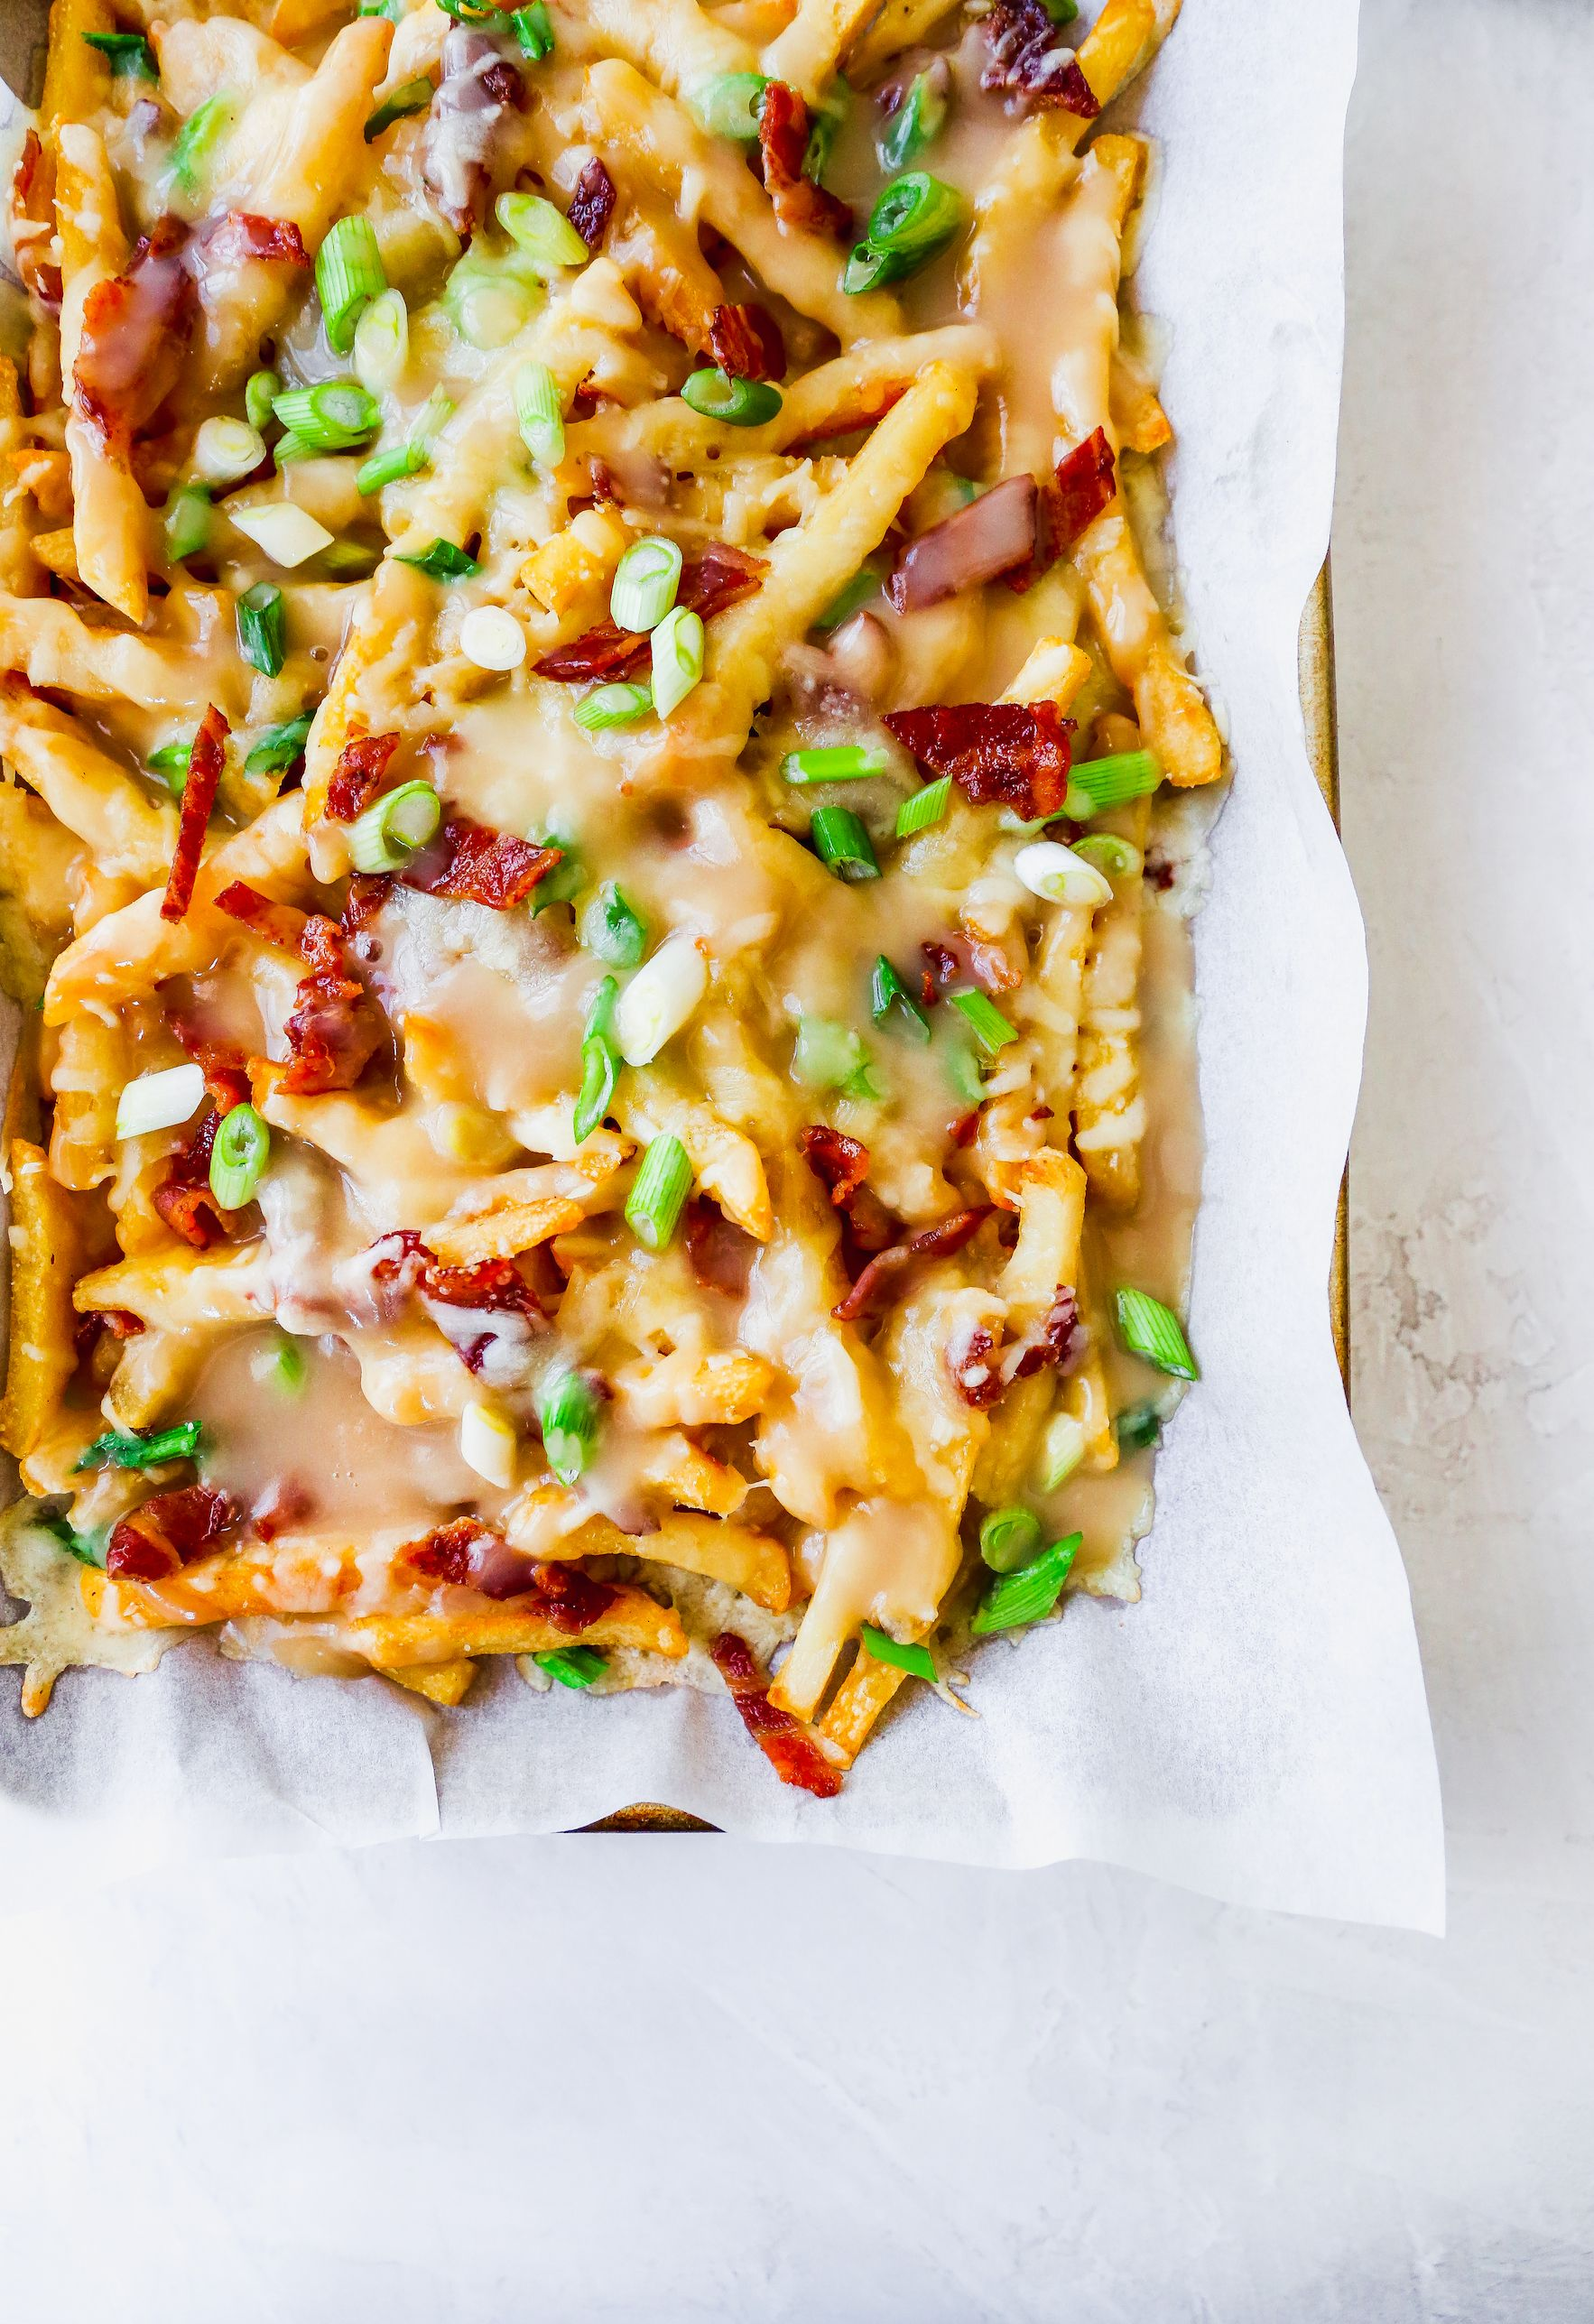 30+ How To Make Dirty Fries With Cheese And Bacon